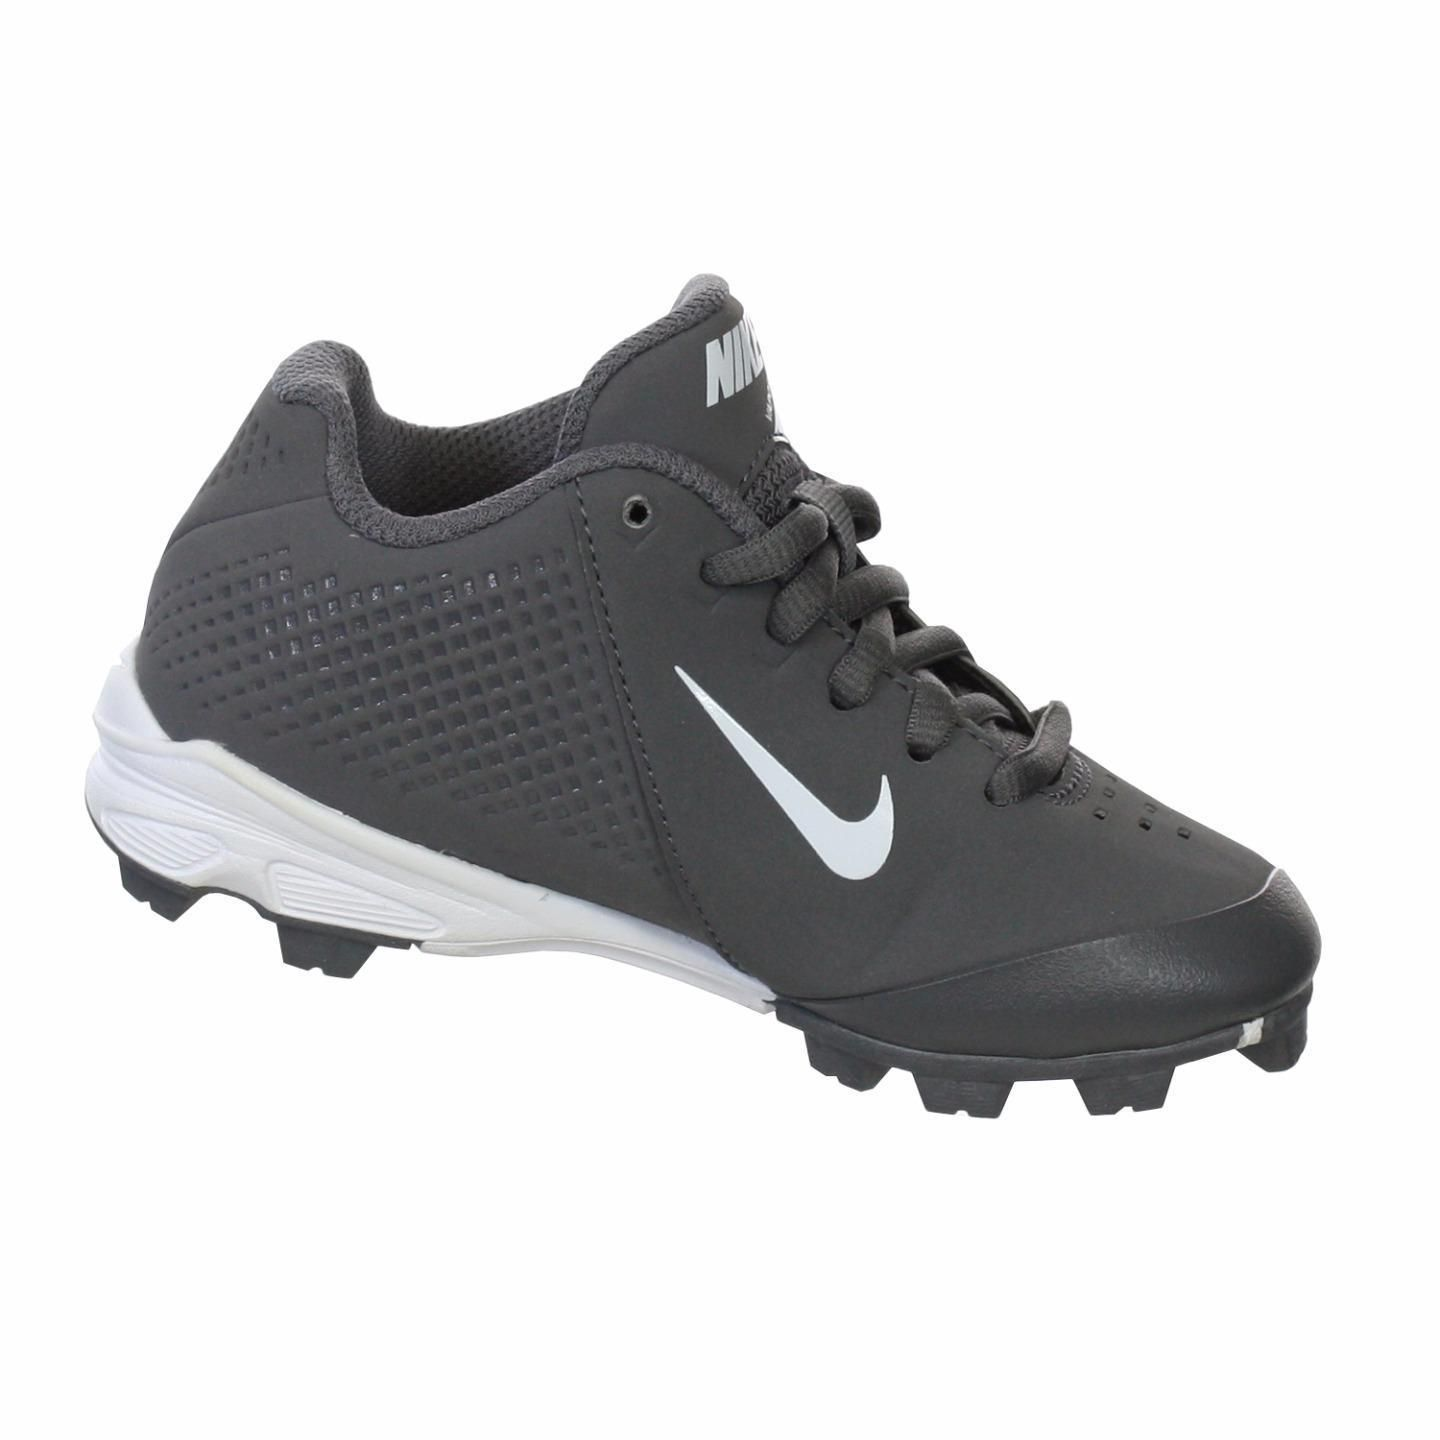 Nike Boy\u0027s Vapor Keystone Graphite/ Low-cut Molded Baseball Cleats.  Softball CleatsGraphiteAthletic ShoesChildrenImageBoysLink